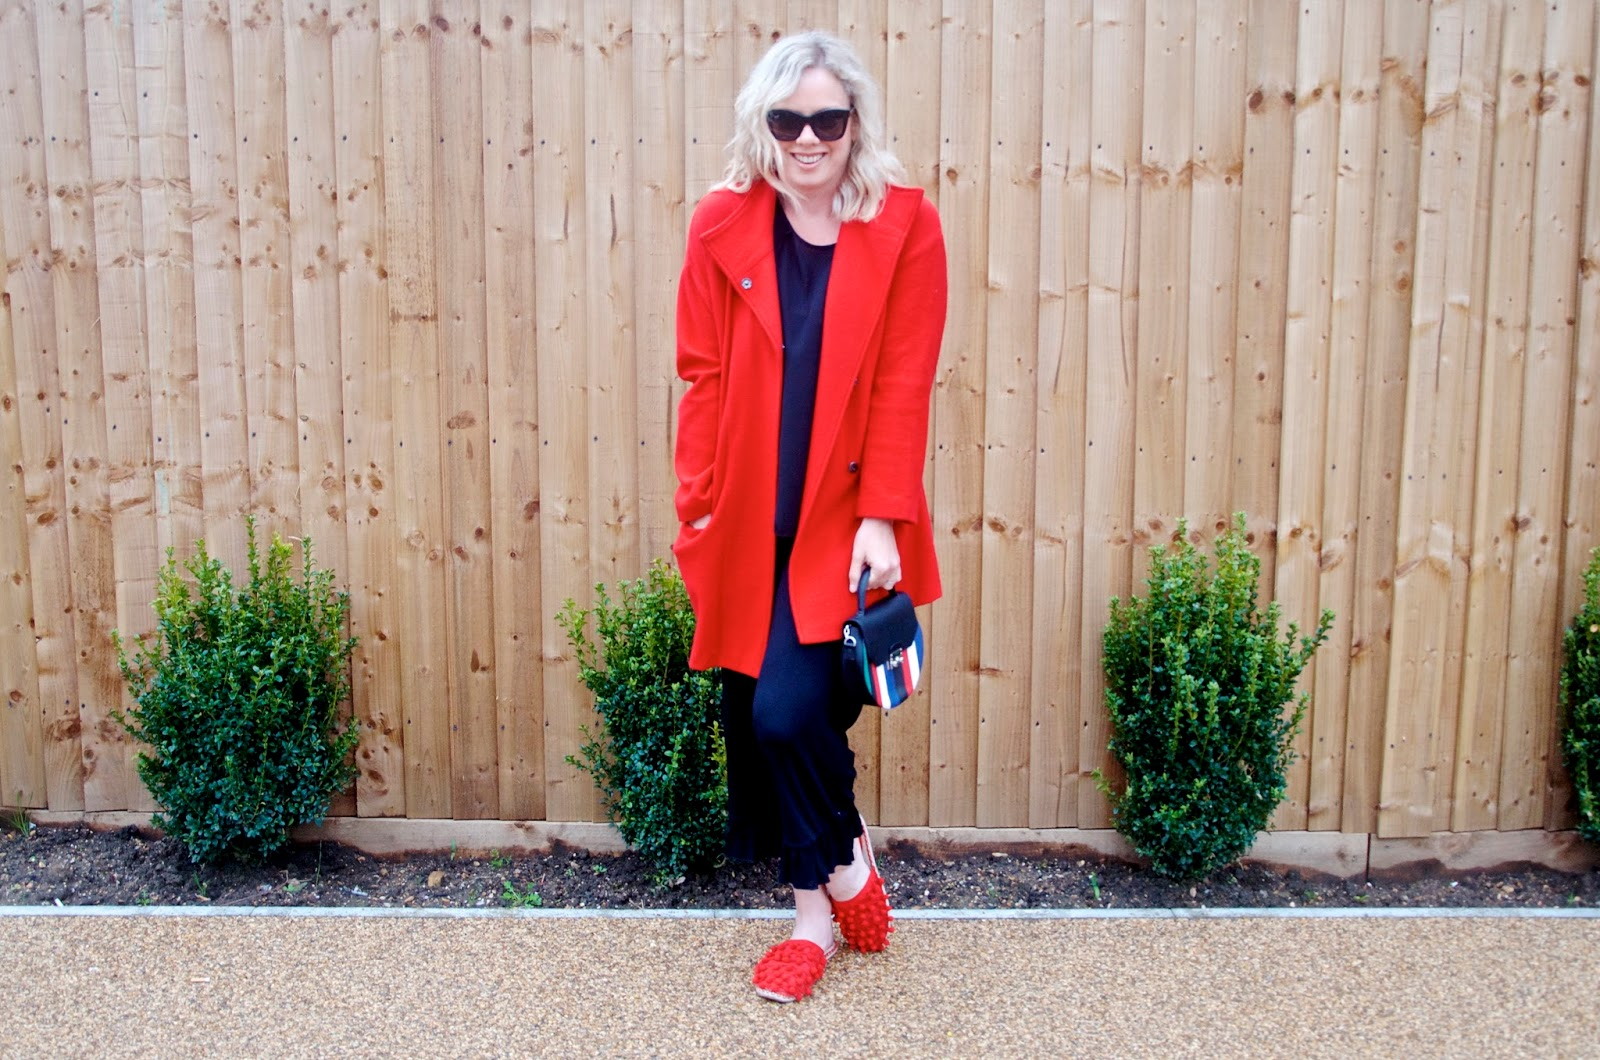 red coat, red shoes, striped bag, green bushes and wooden wall